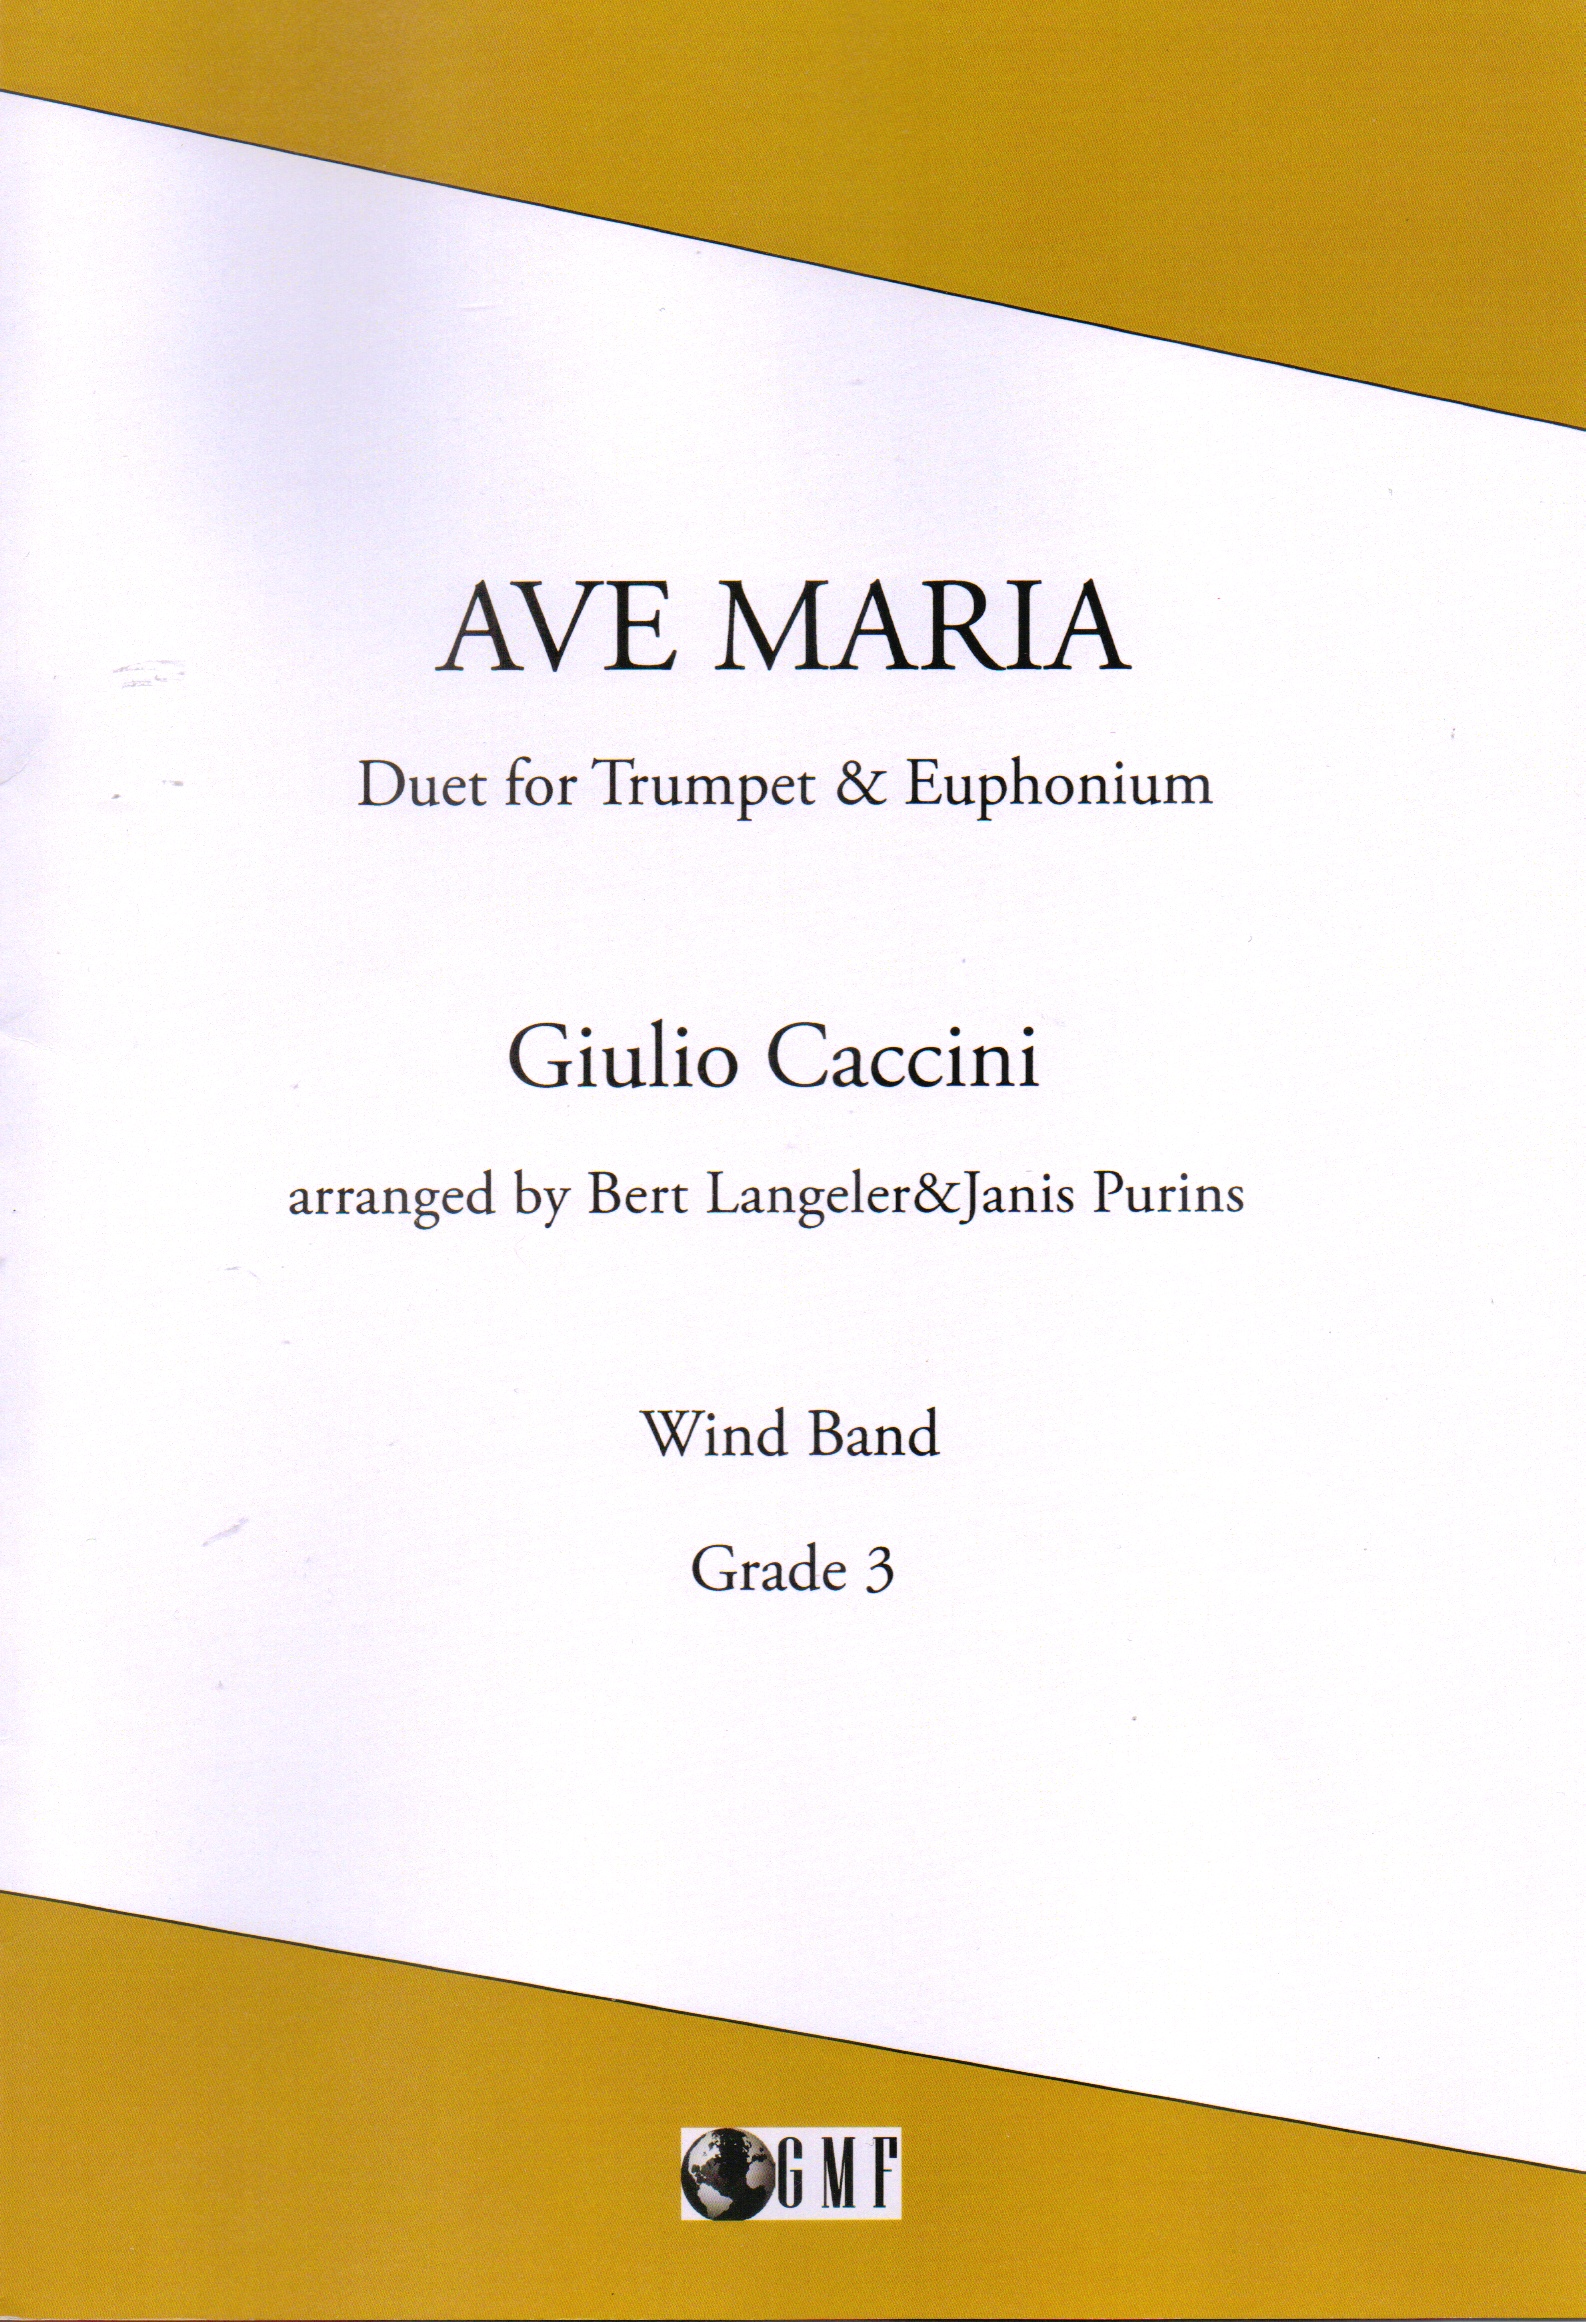 Ave Maria - Giulio Caccini Arr.Langeler/Purins - Duet for Euphonium & Trumpet and Wind Band